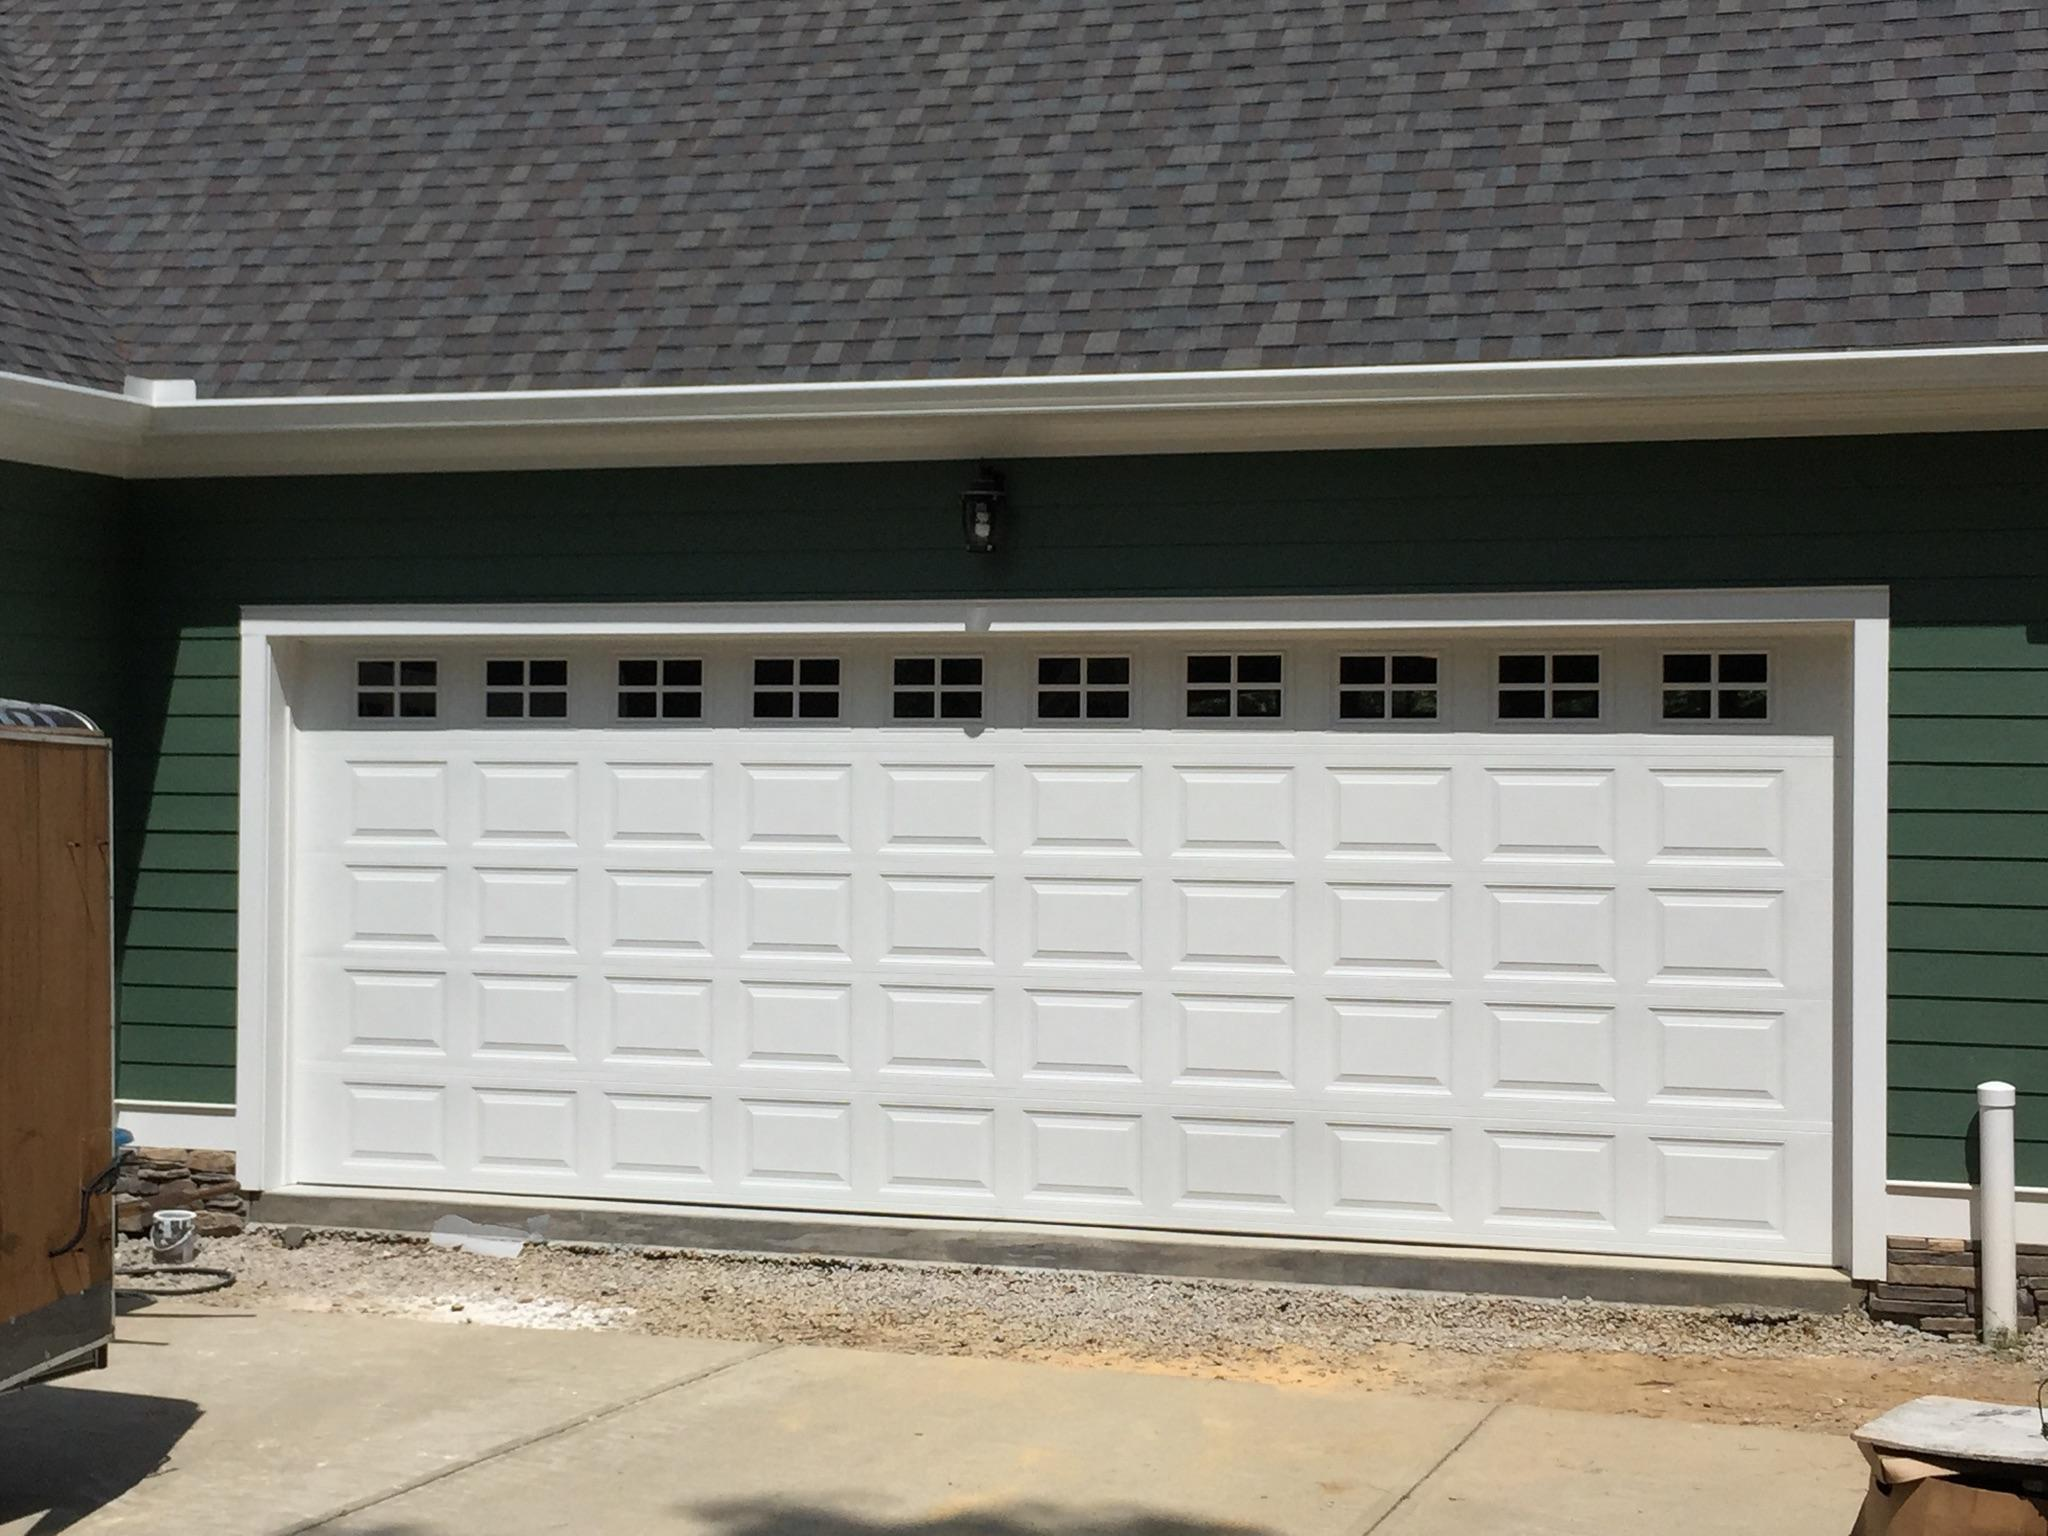 1536 #836D48 All American Overhead Garage Door Inc. In Wendell NC 27591  image Overhead Garage Doors Residential Reviews 37132048